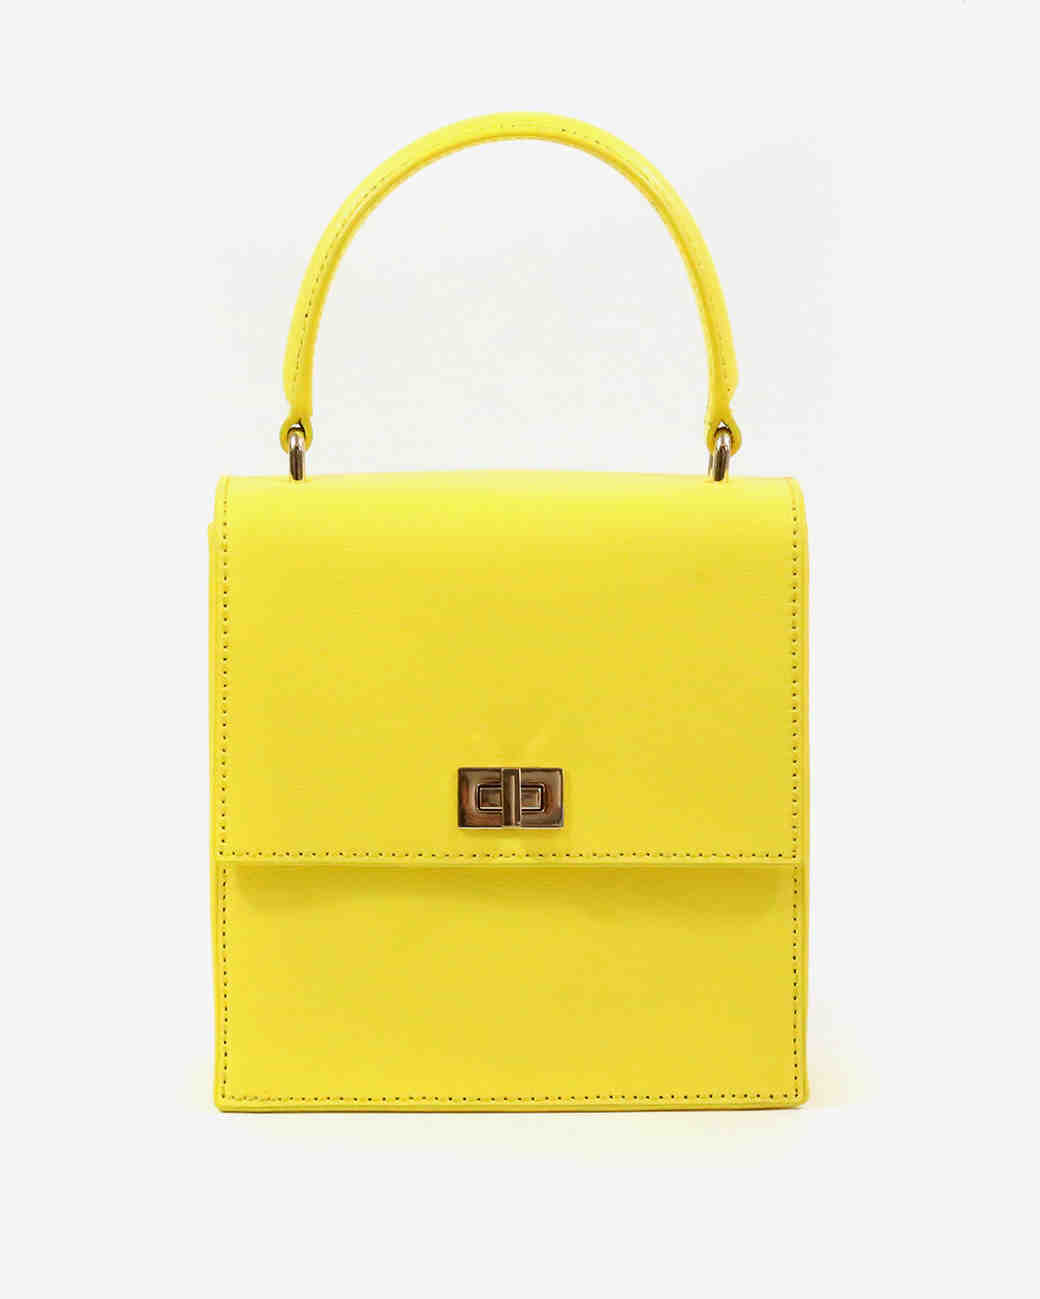 bridesmaid gift yellow mini lady bag